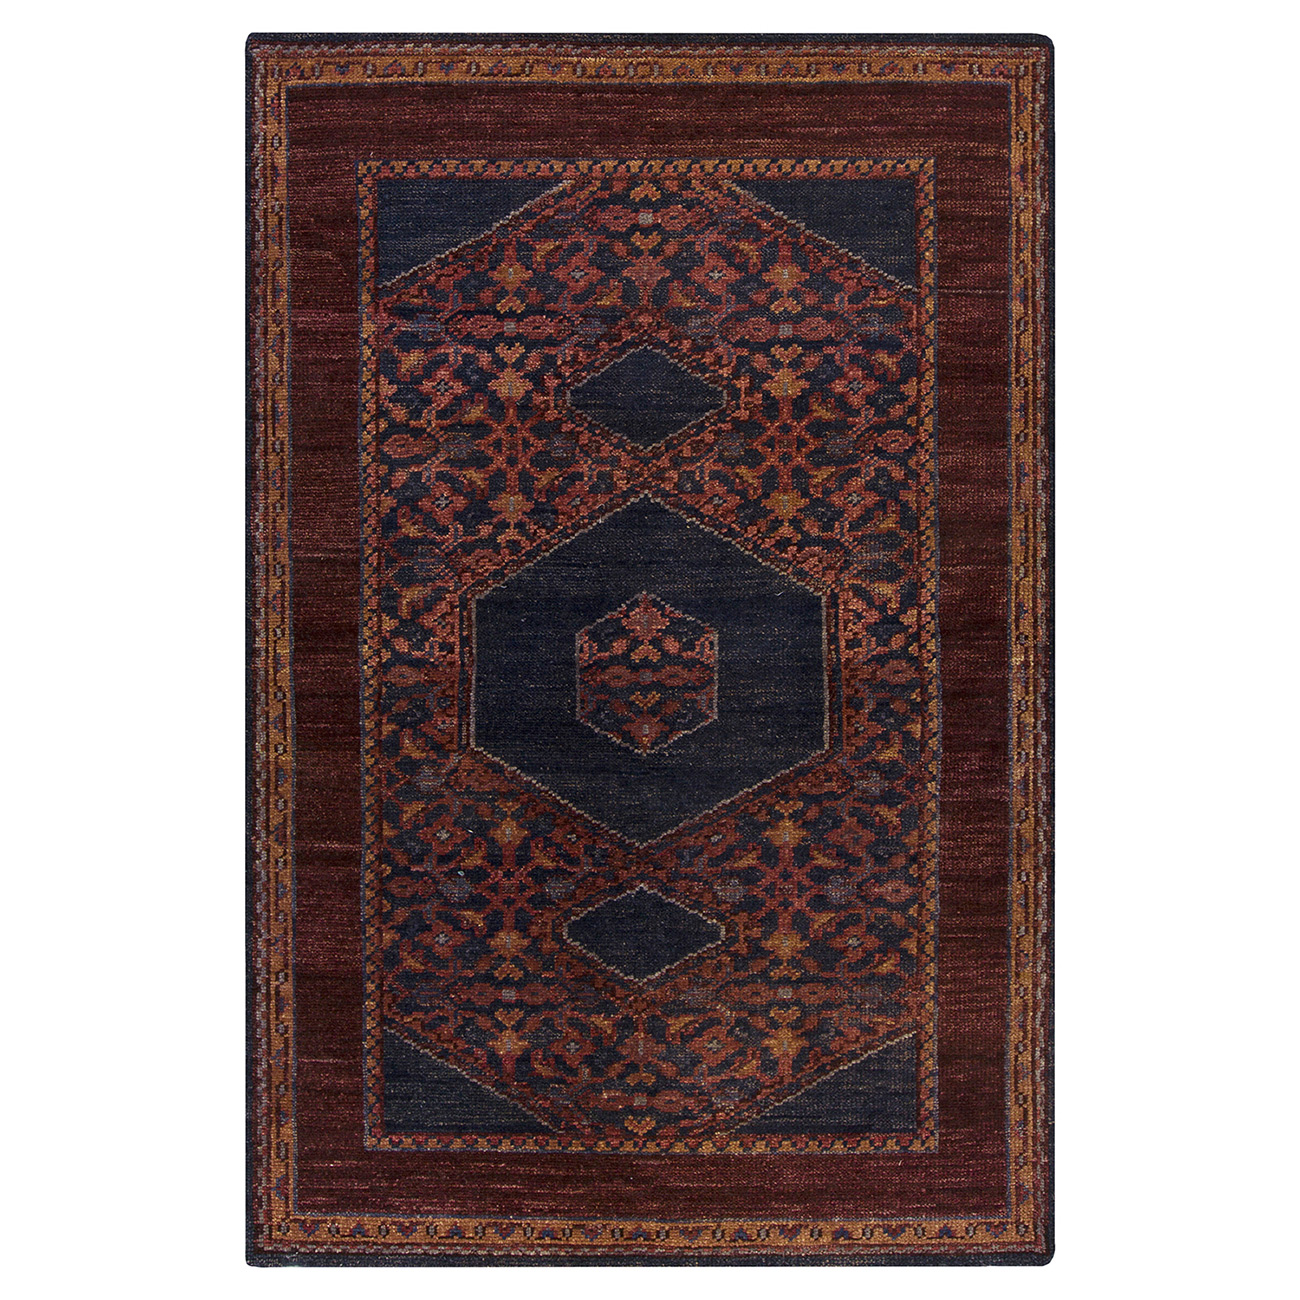 Priya Bazaar Antique Wash Burgundy Wool Rug - 2x3